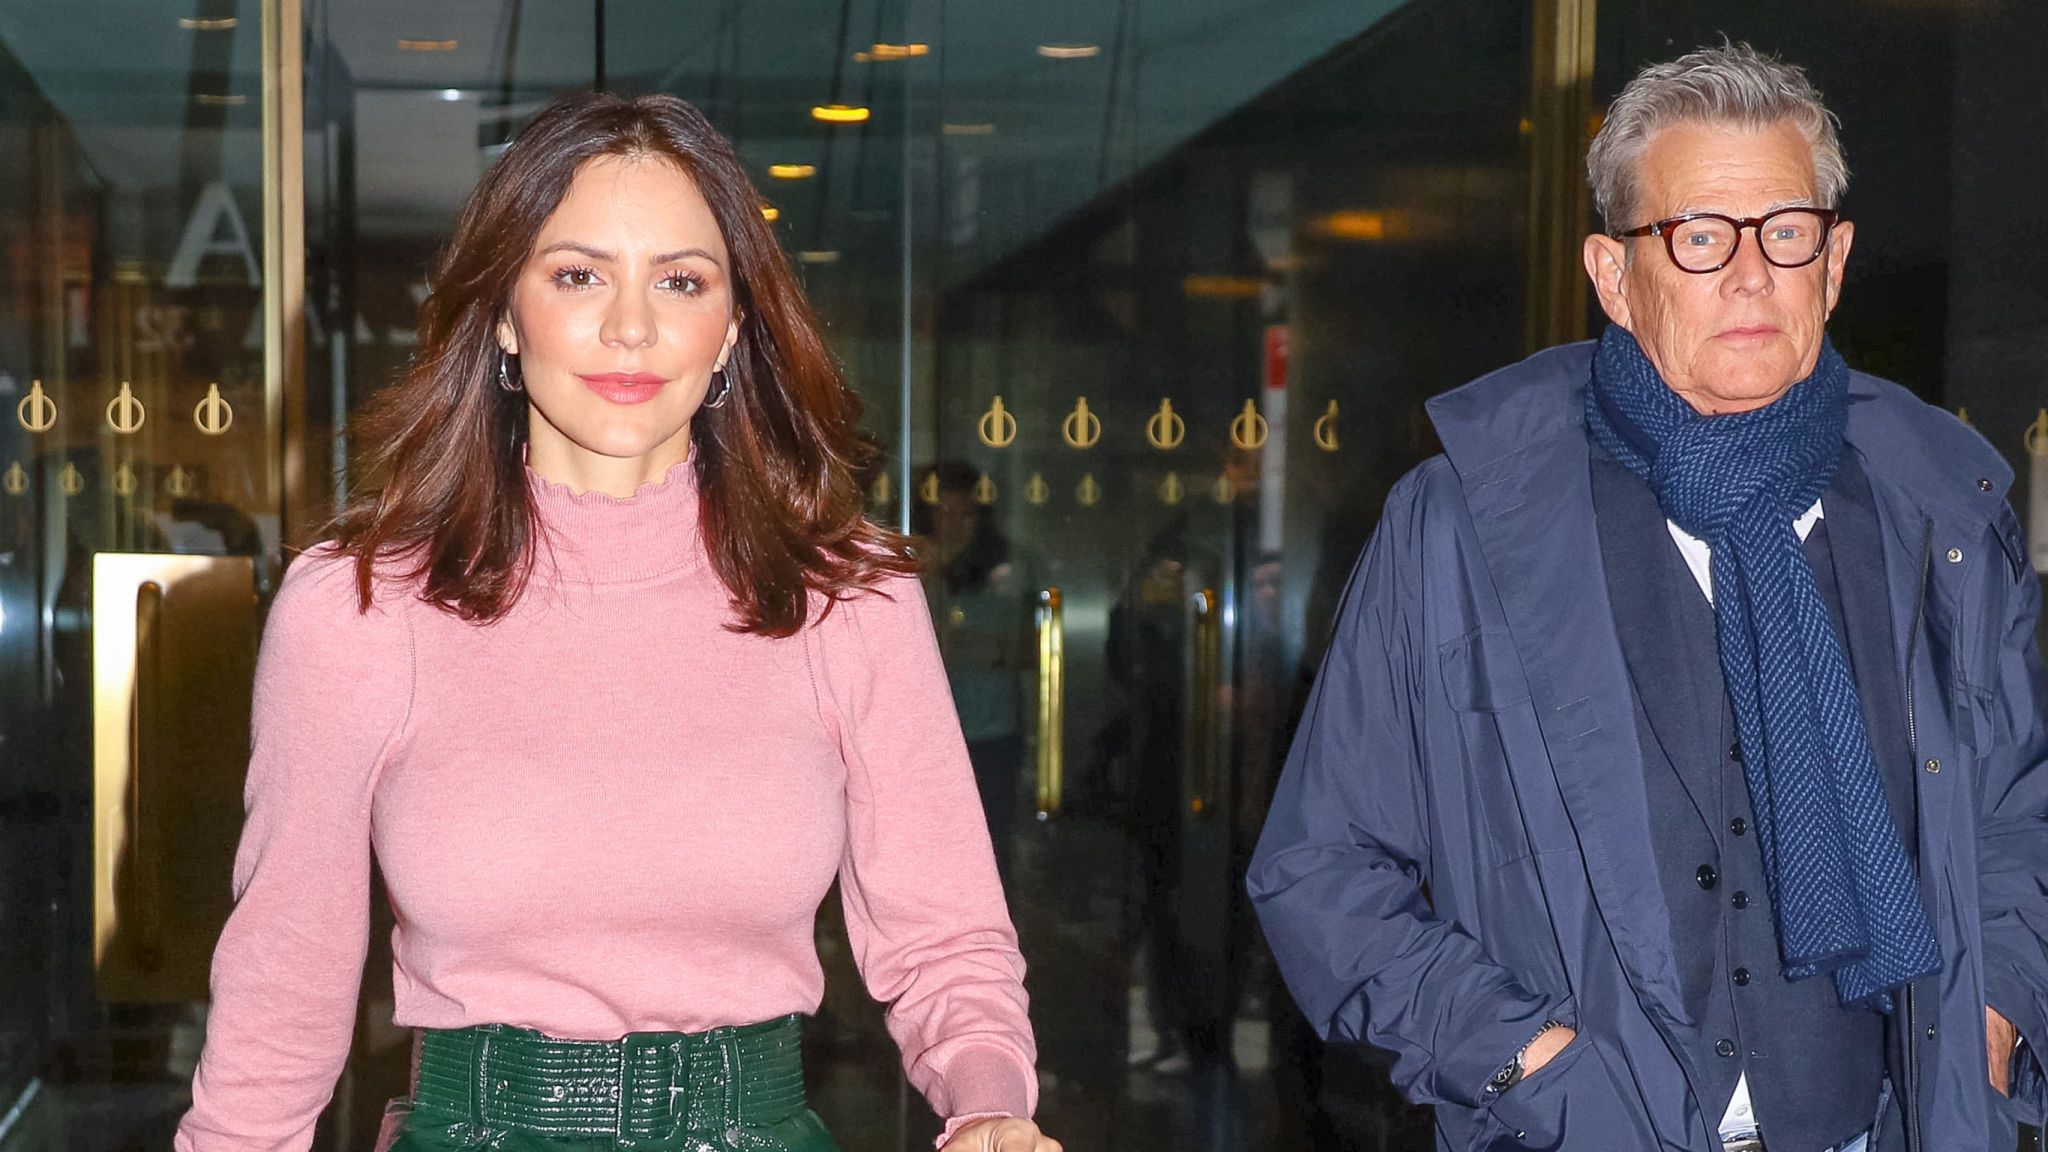 Katharine McPhee and David Foster are seen on November 19, 2019 in New York City